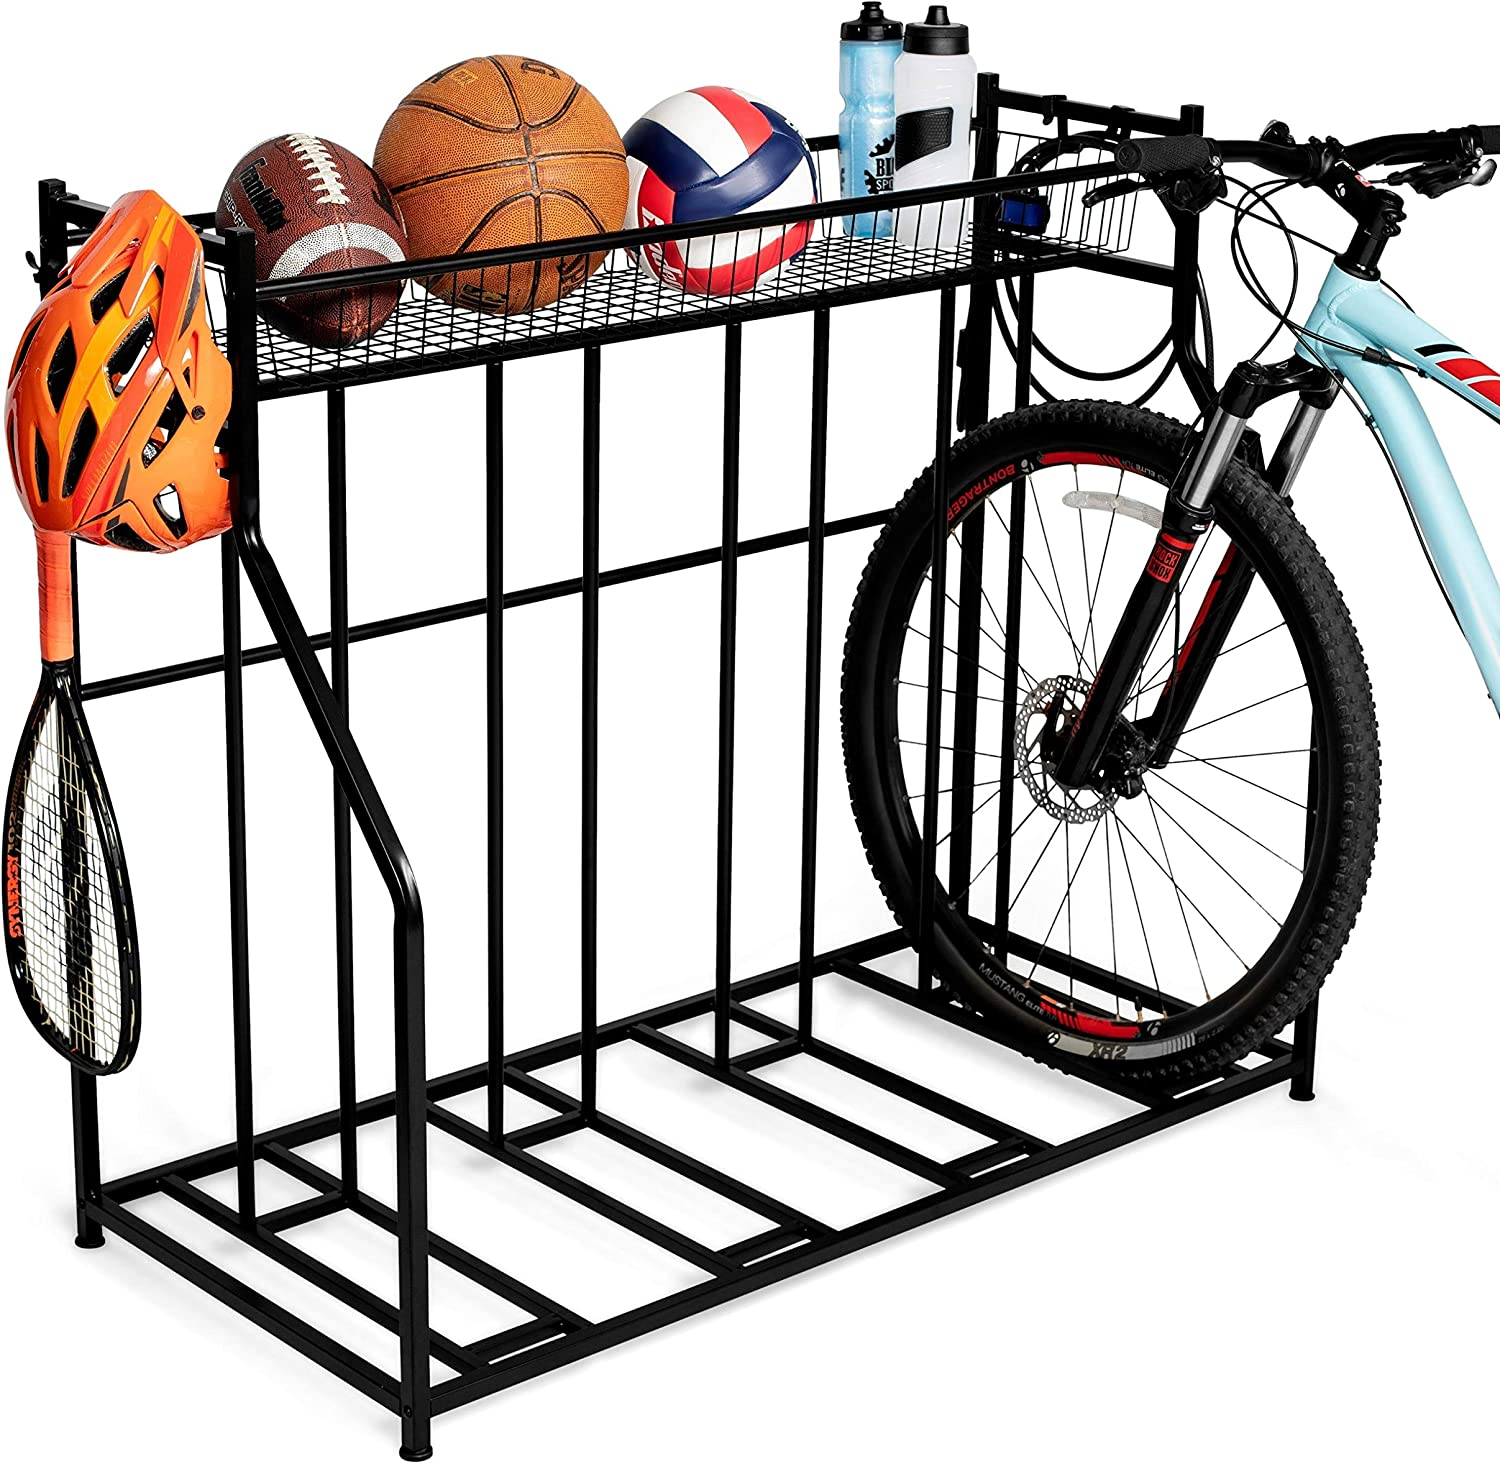 BIRDROCK HOME 4 Bike New arrival Stand Rack Metal Cheap mail order shopping with – Floor Storage